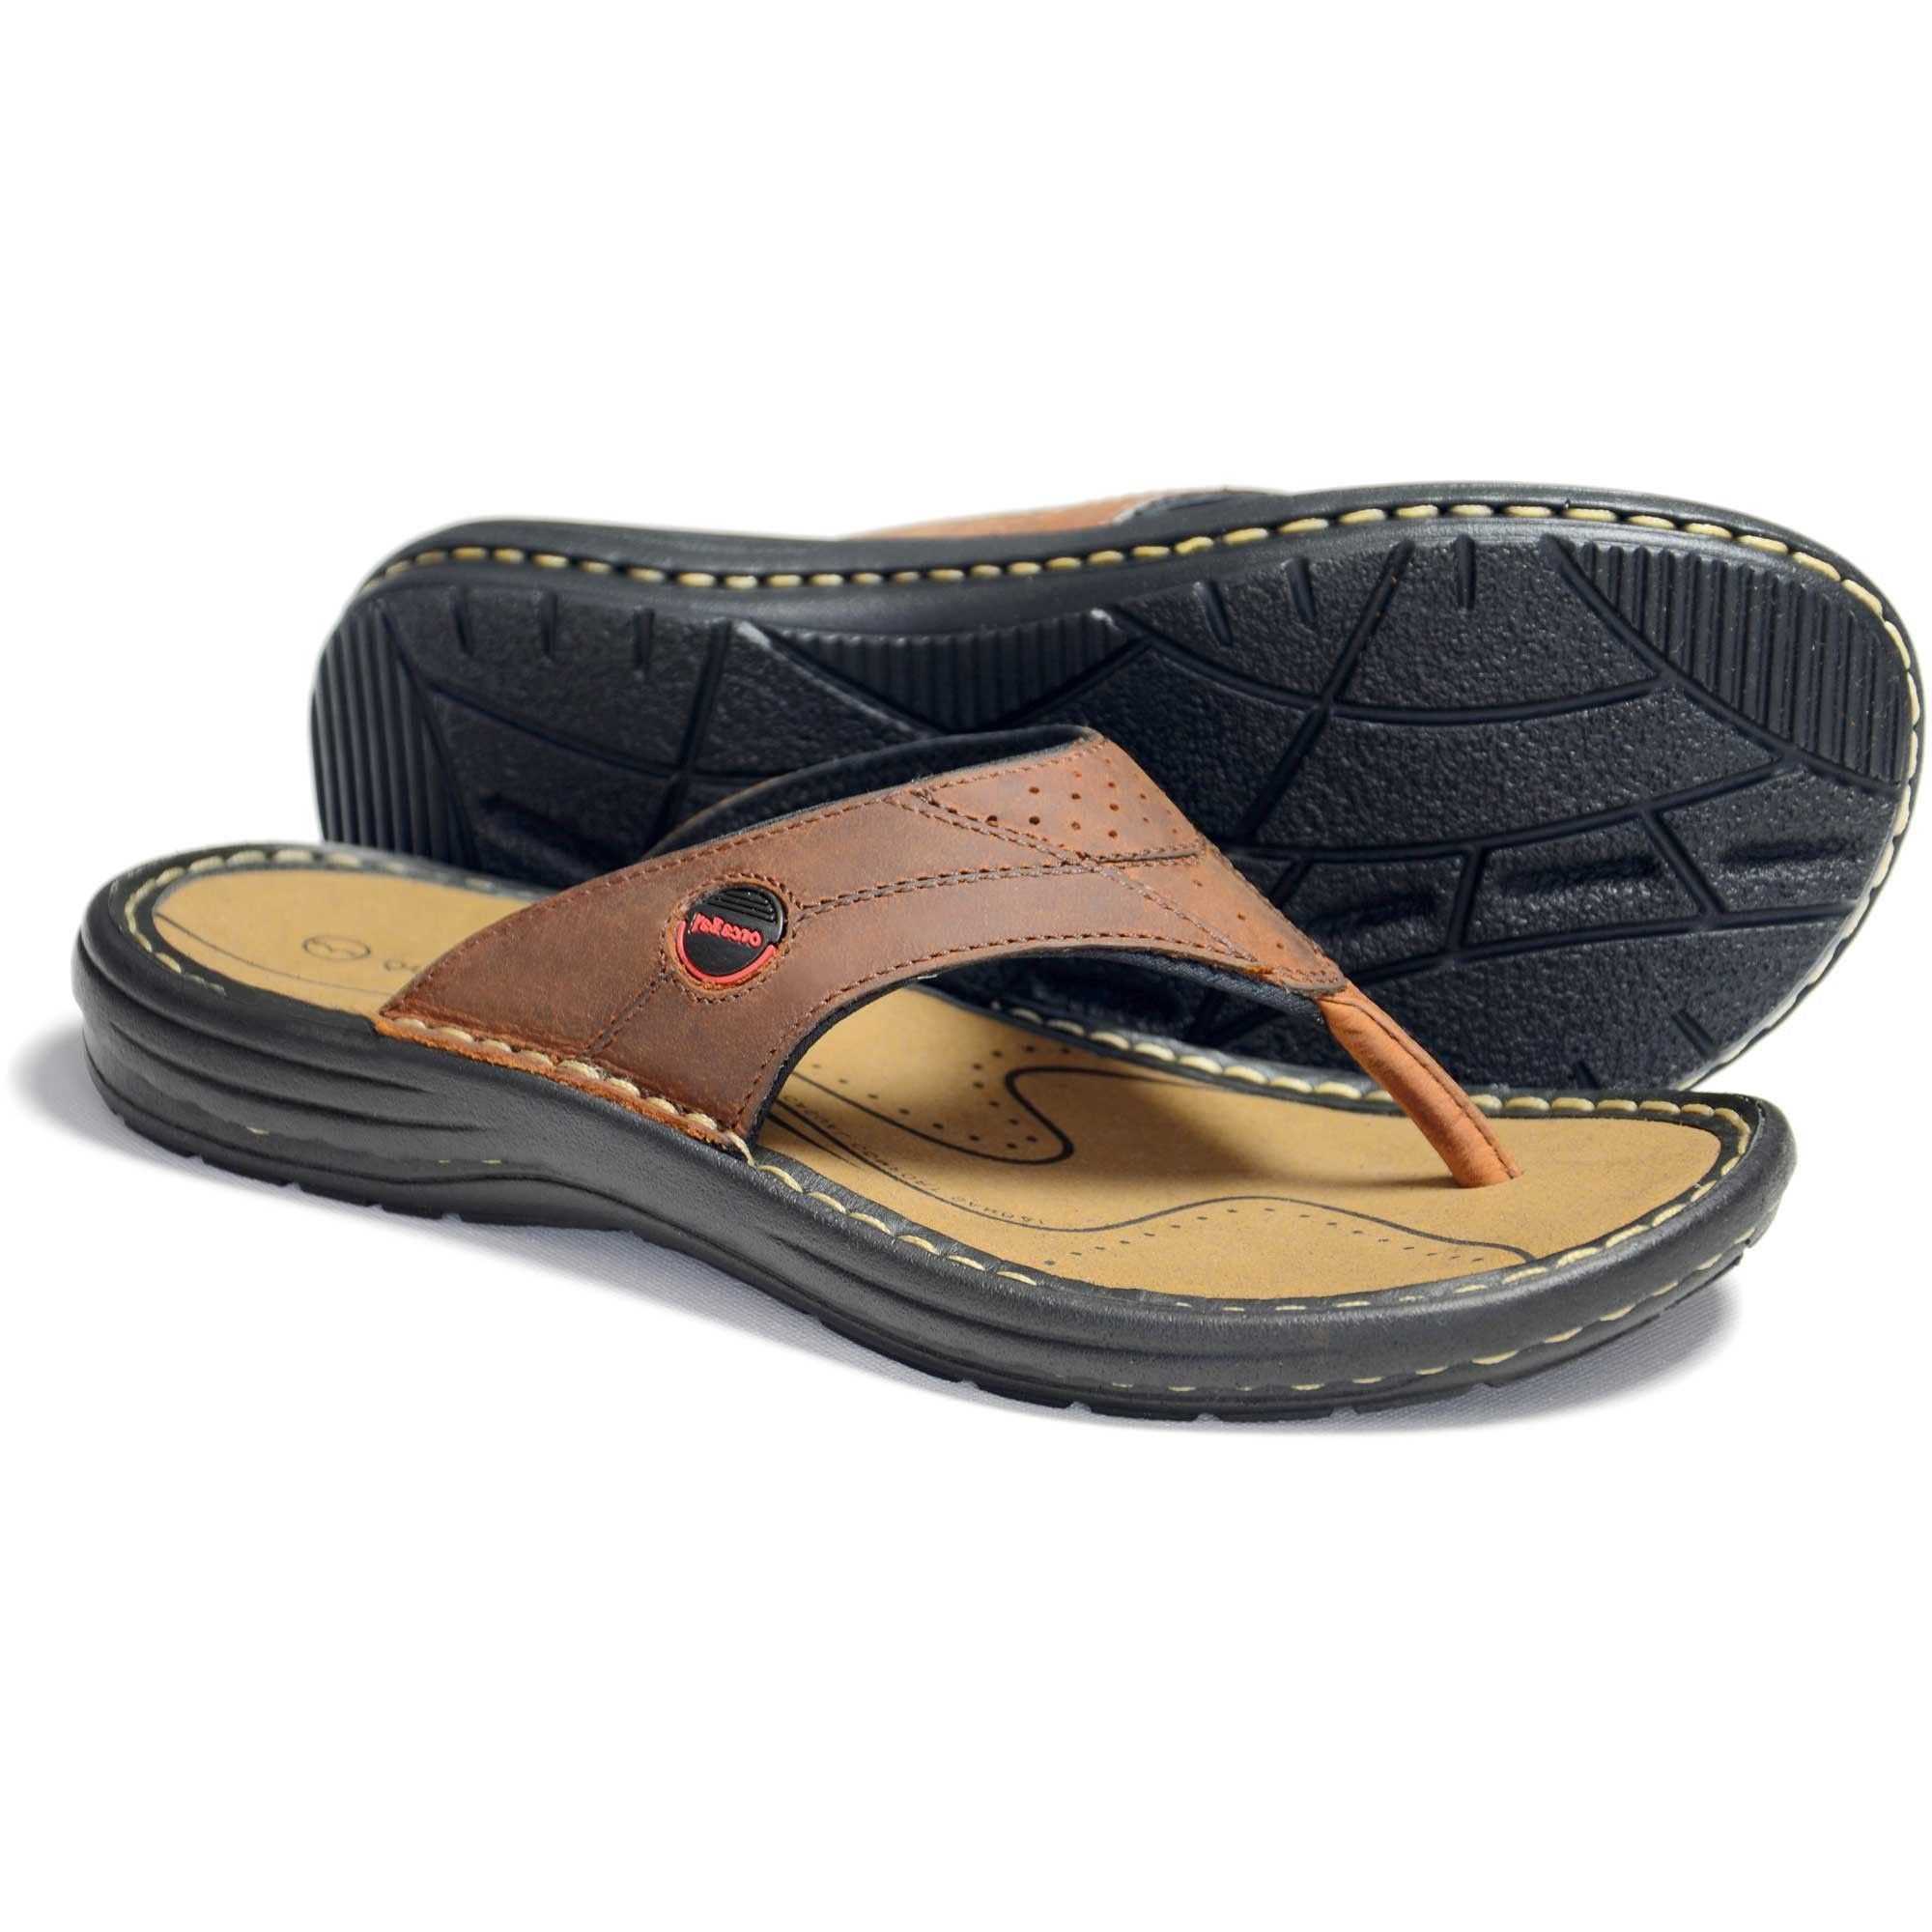 01fb83bebfce01 Mens Orca Bay Fiji Sandal flip flop- Brown Mens durable sports sandal soft  real leather foot bed Fashionable thong-style sandal Top seller Mens sizes  41 - ...